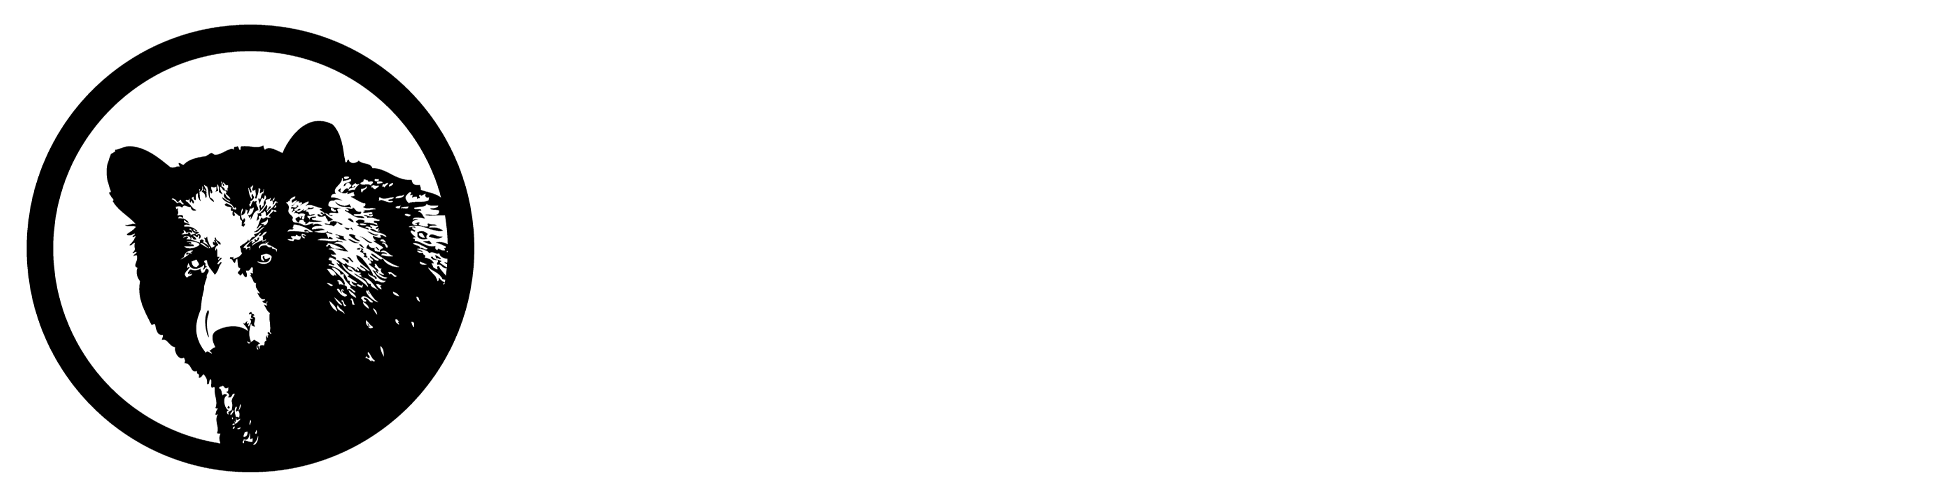 Backcountry Gallery Web Store